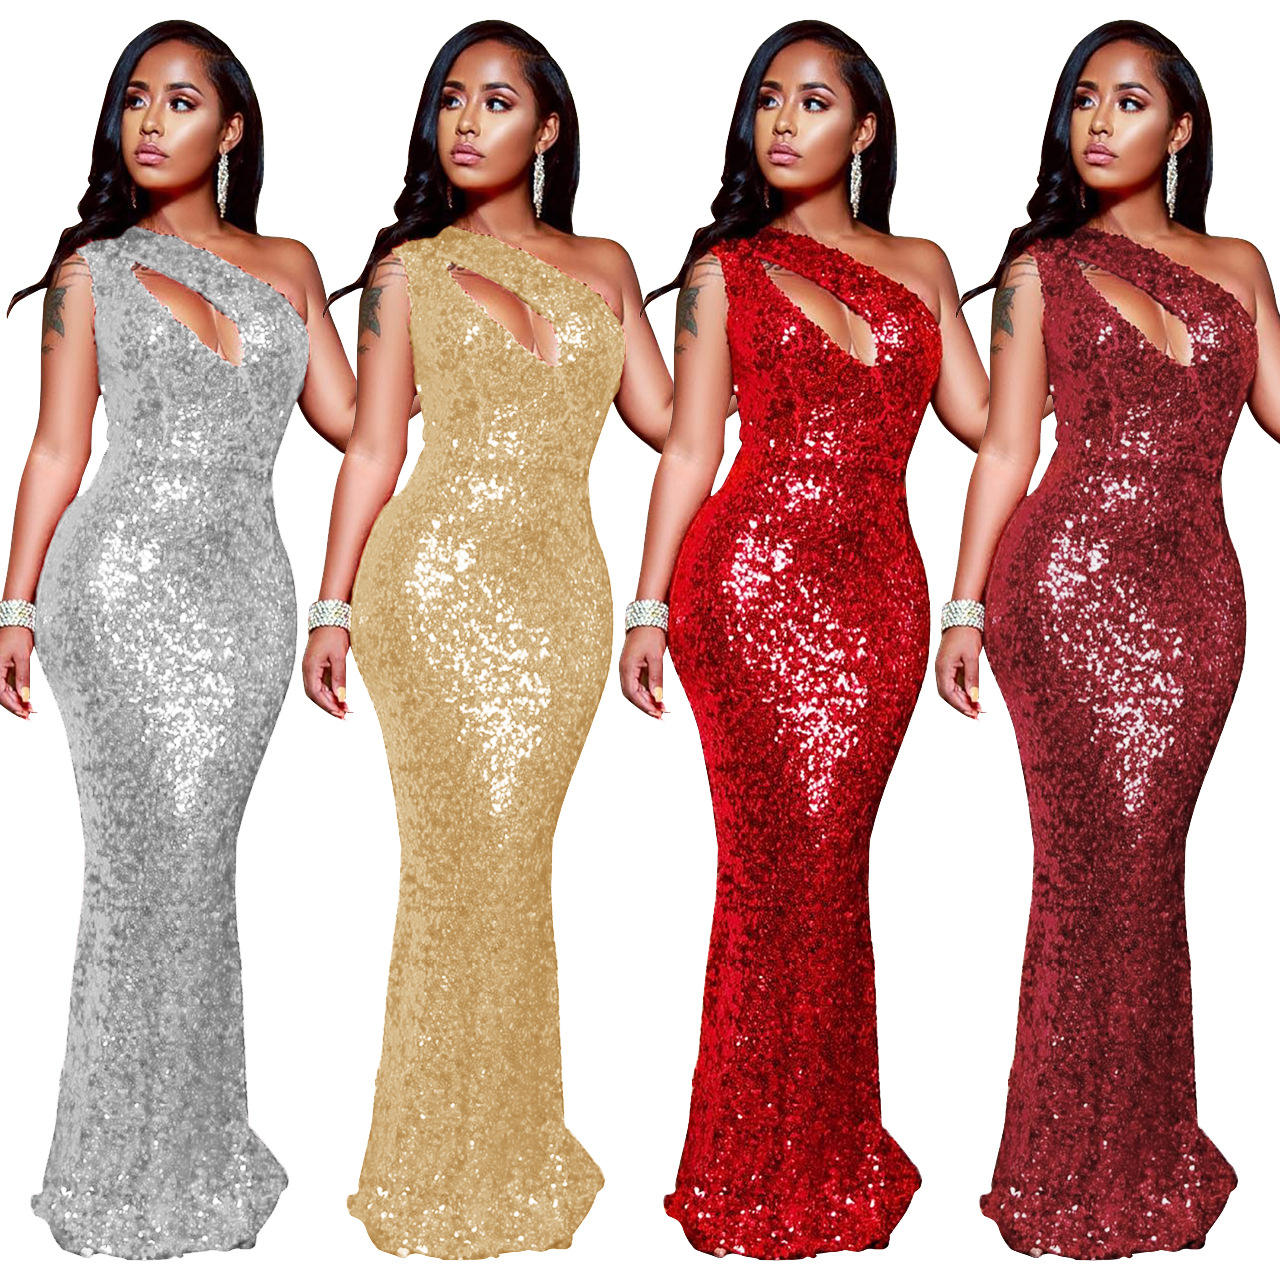 New fashion sexy long robes formal sequined single shoulder evening dress elegant party